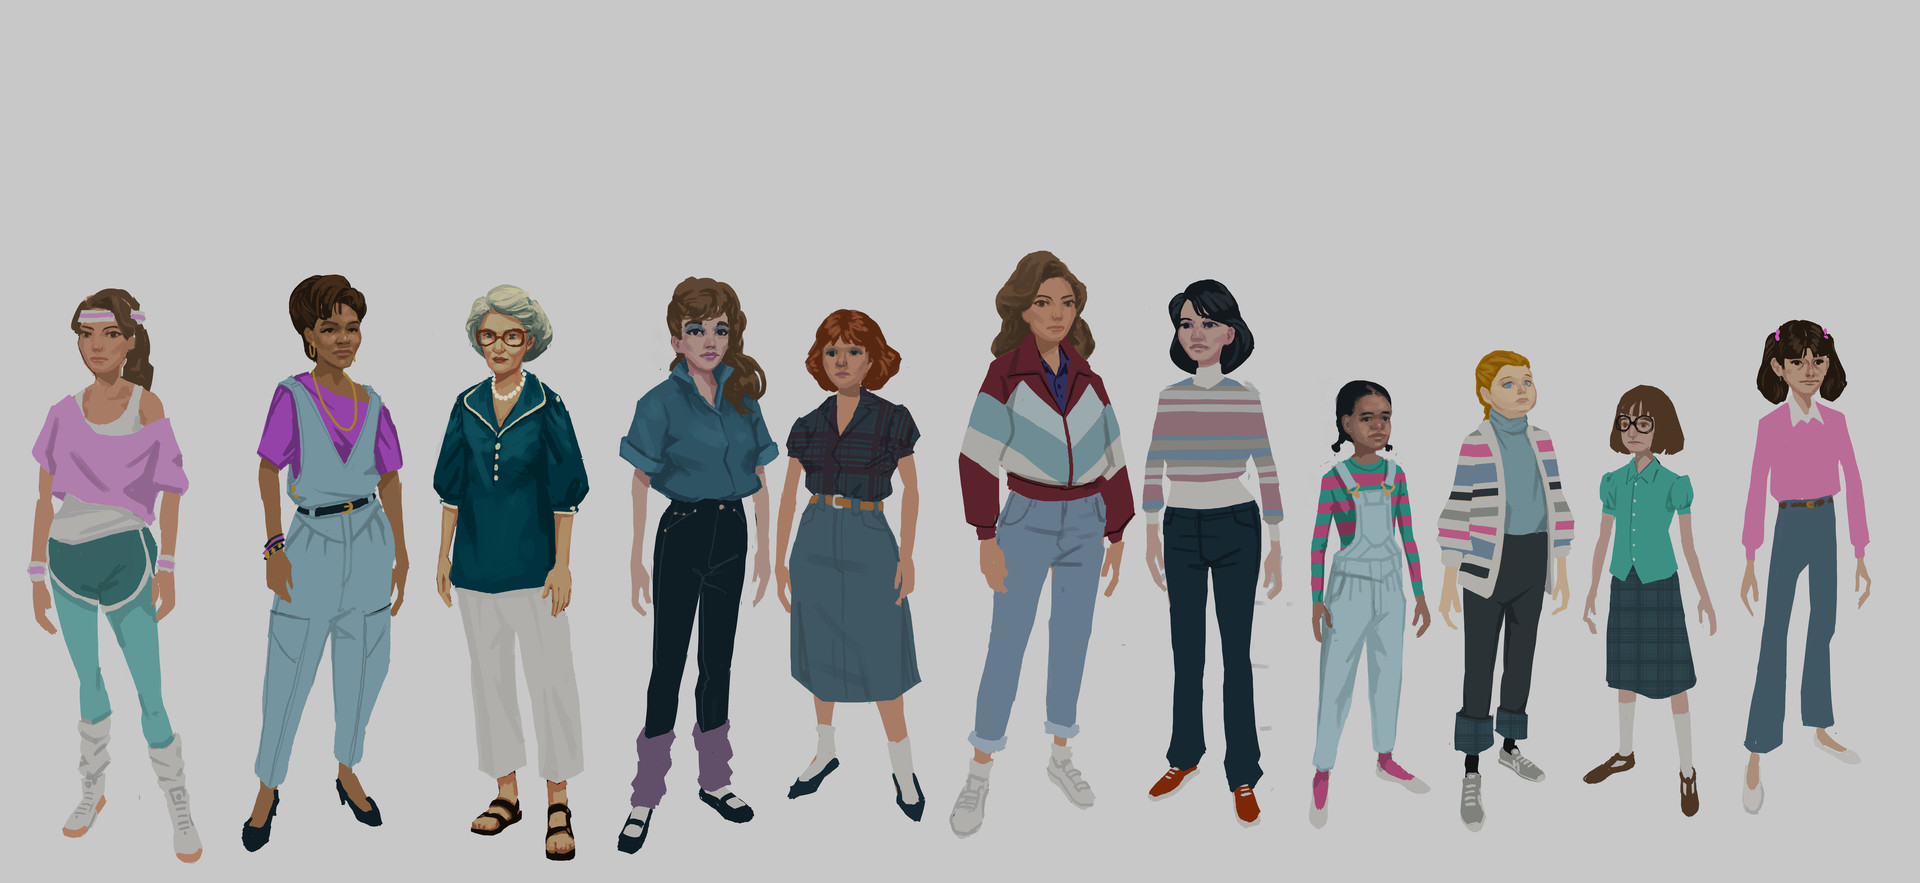 Bruce glidewell female kit roughs